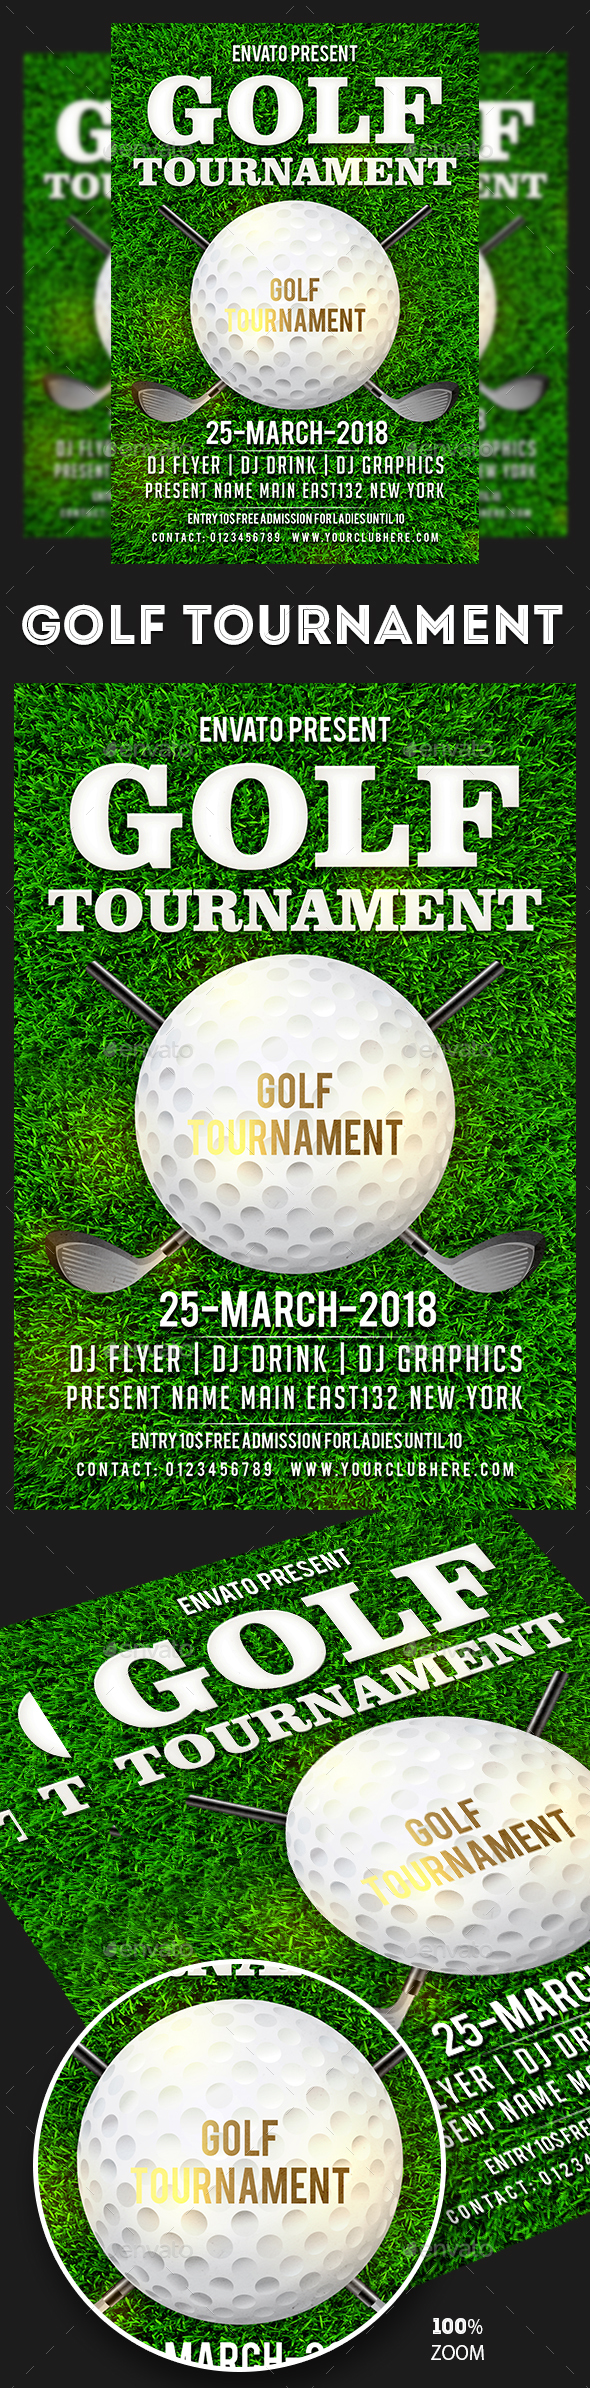 Golf Tournament Flyers - Sports Events